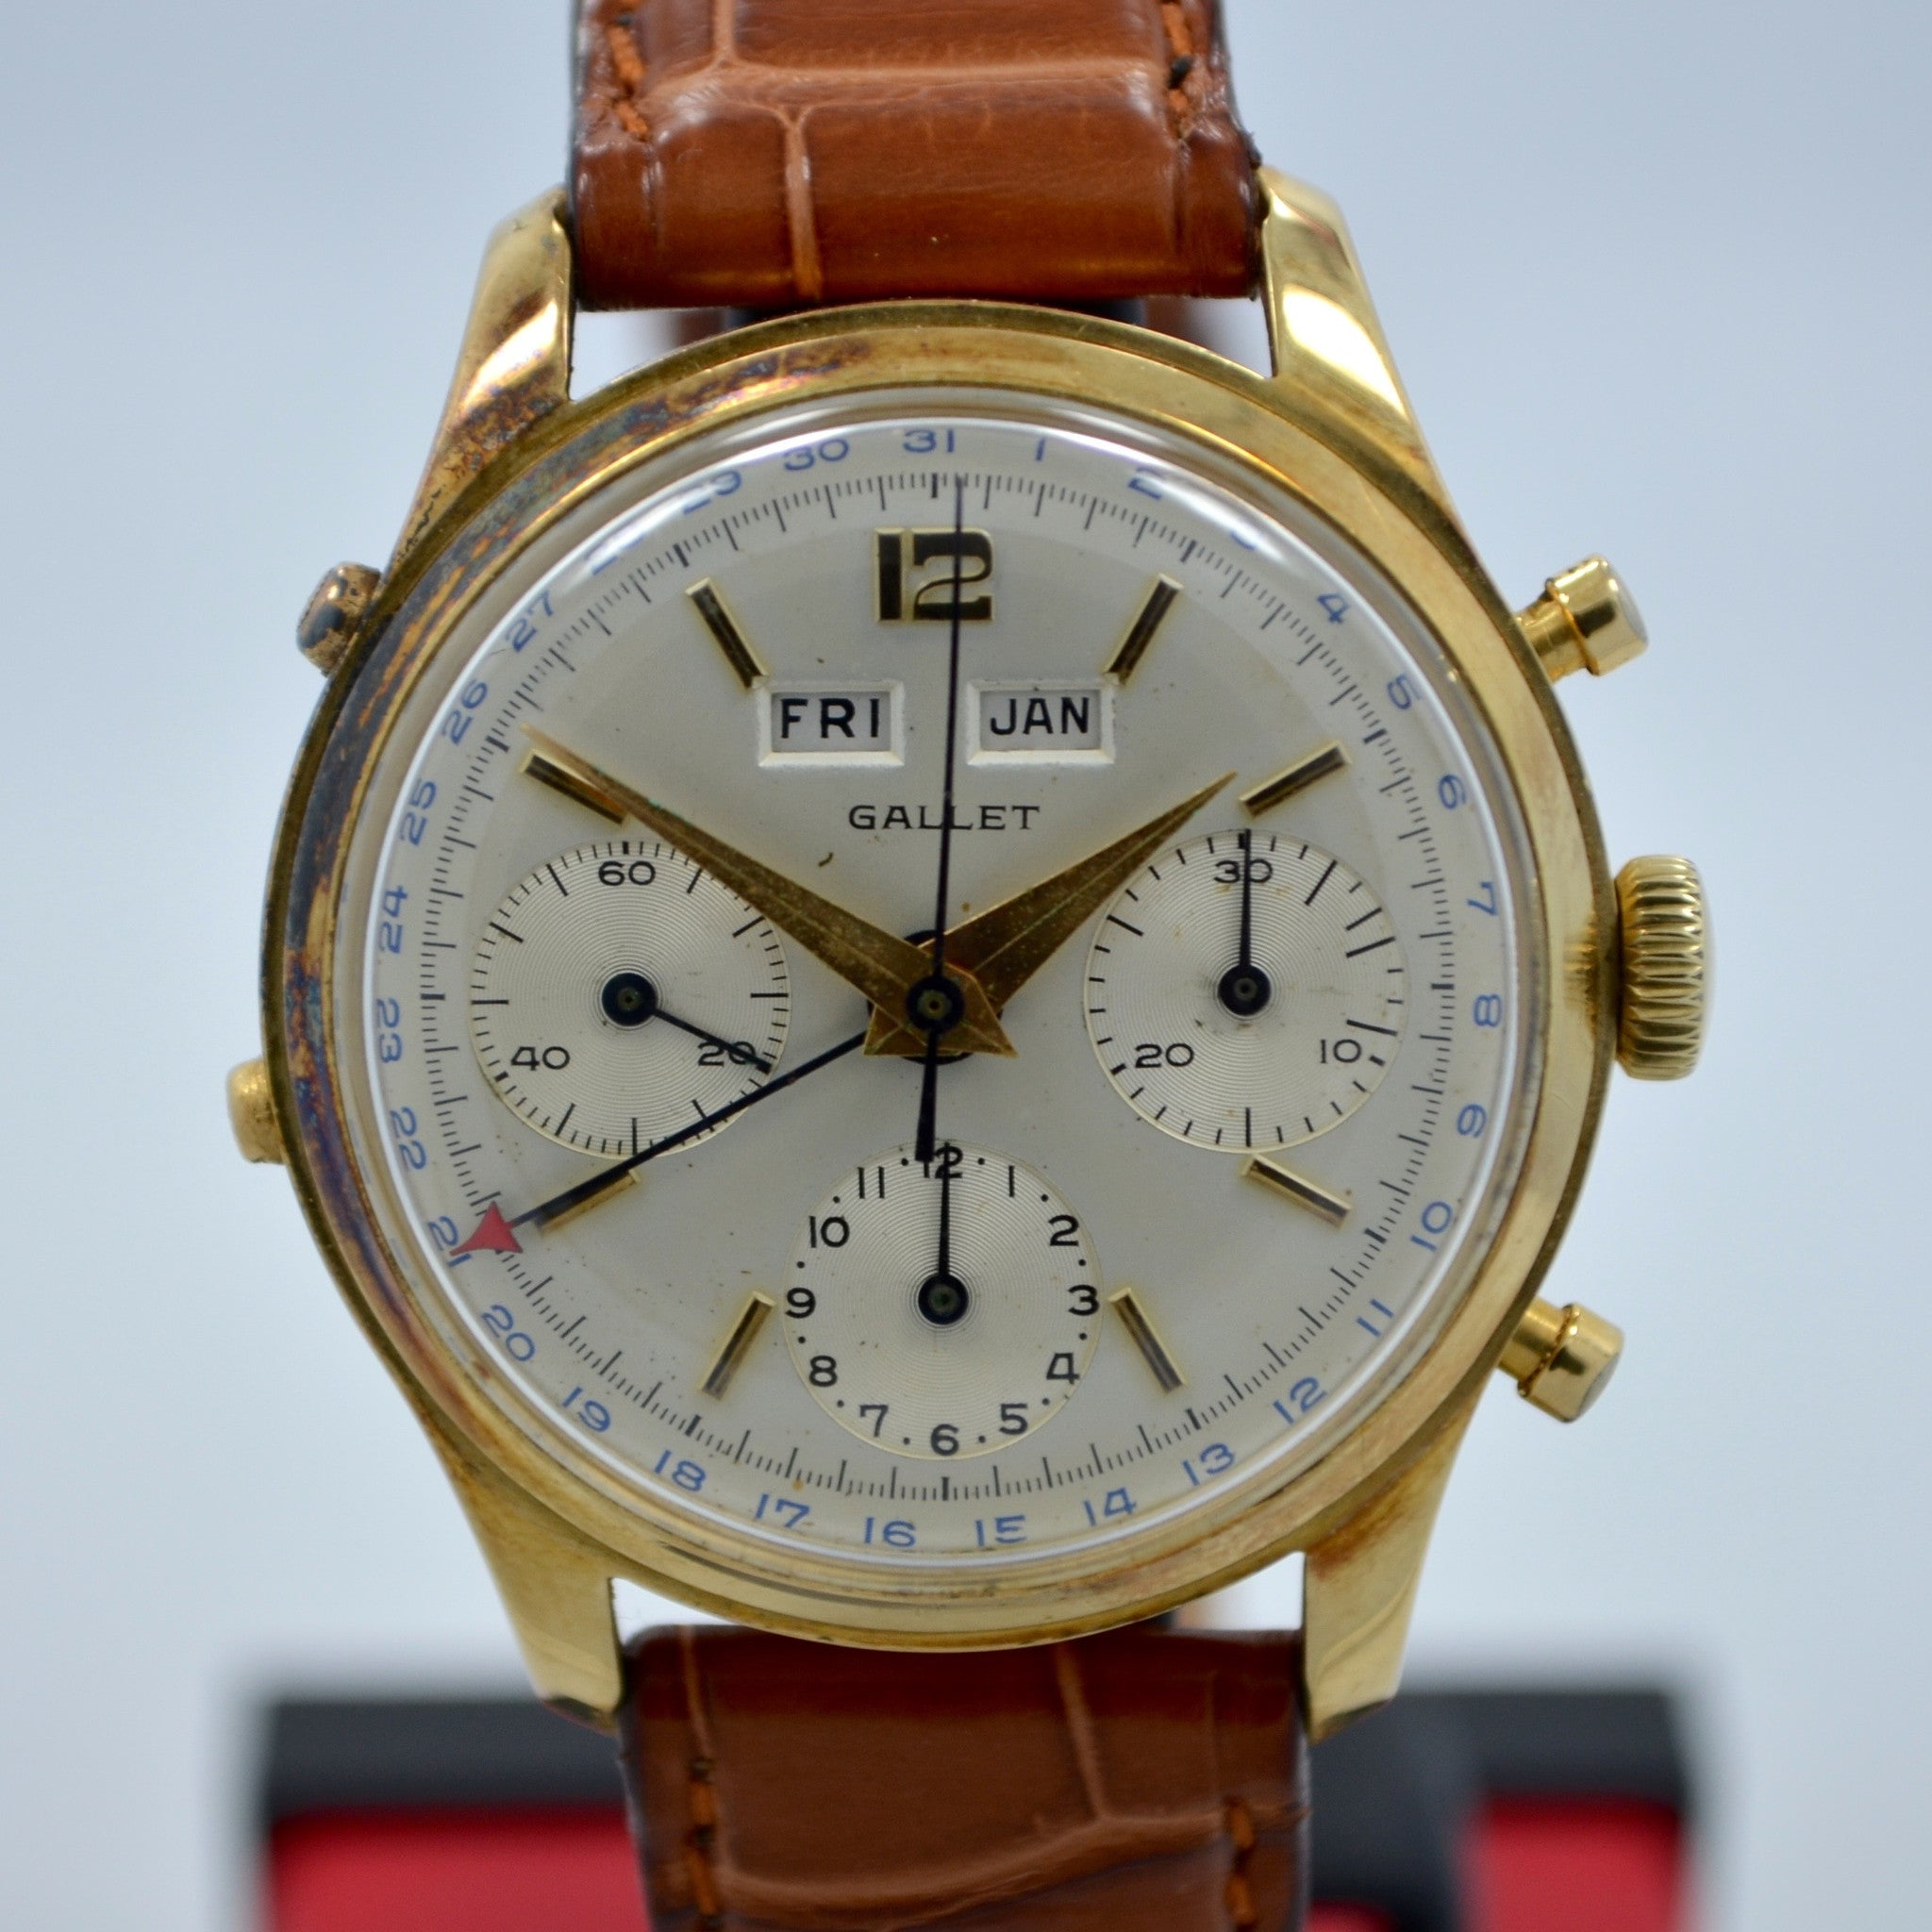 Vintage Gallet Solid 14K Yellow Gold Chronograph Triple Date Valjoux 72C Watch - Hashtag Watch Company